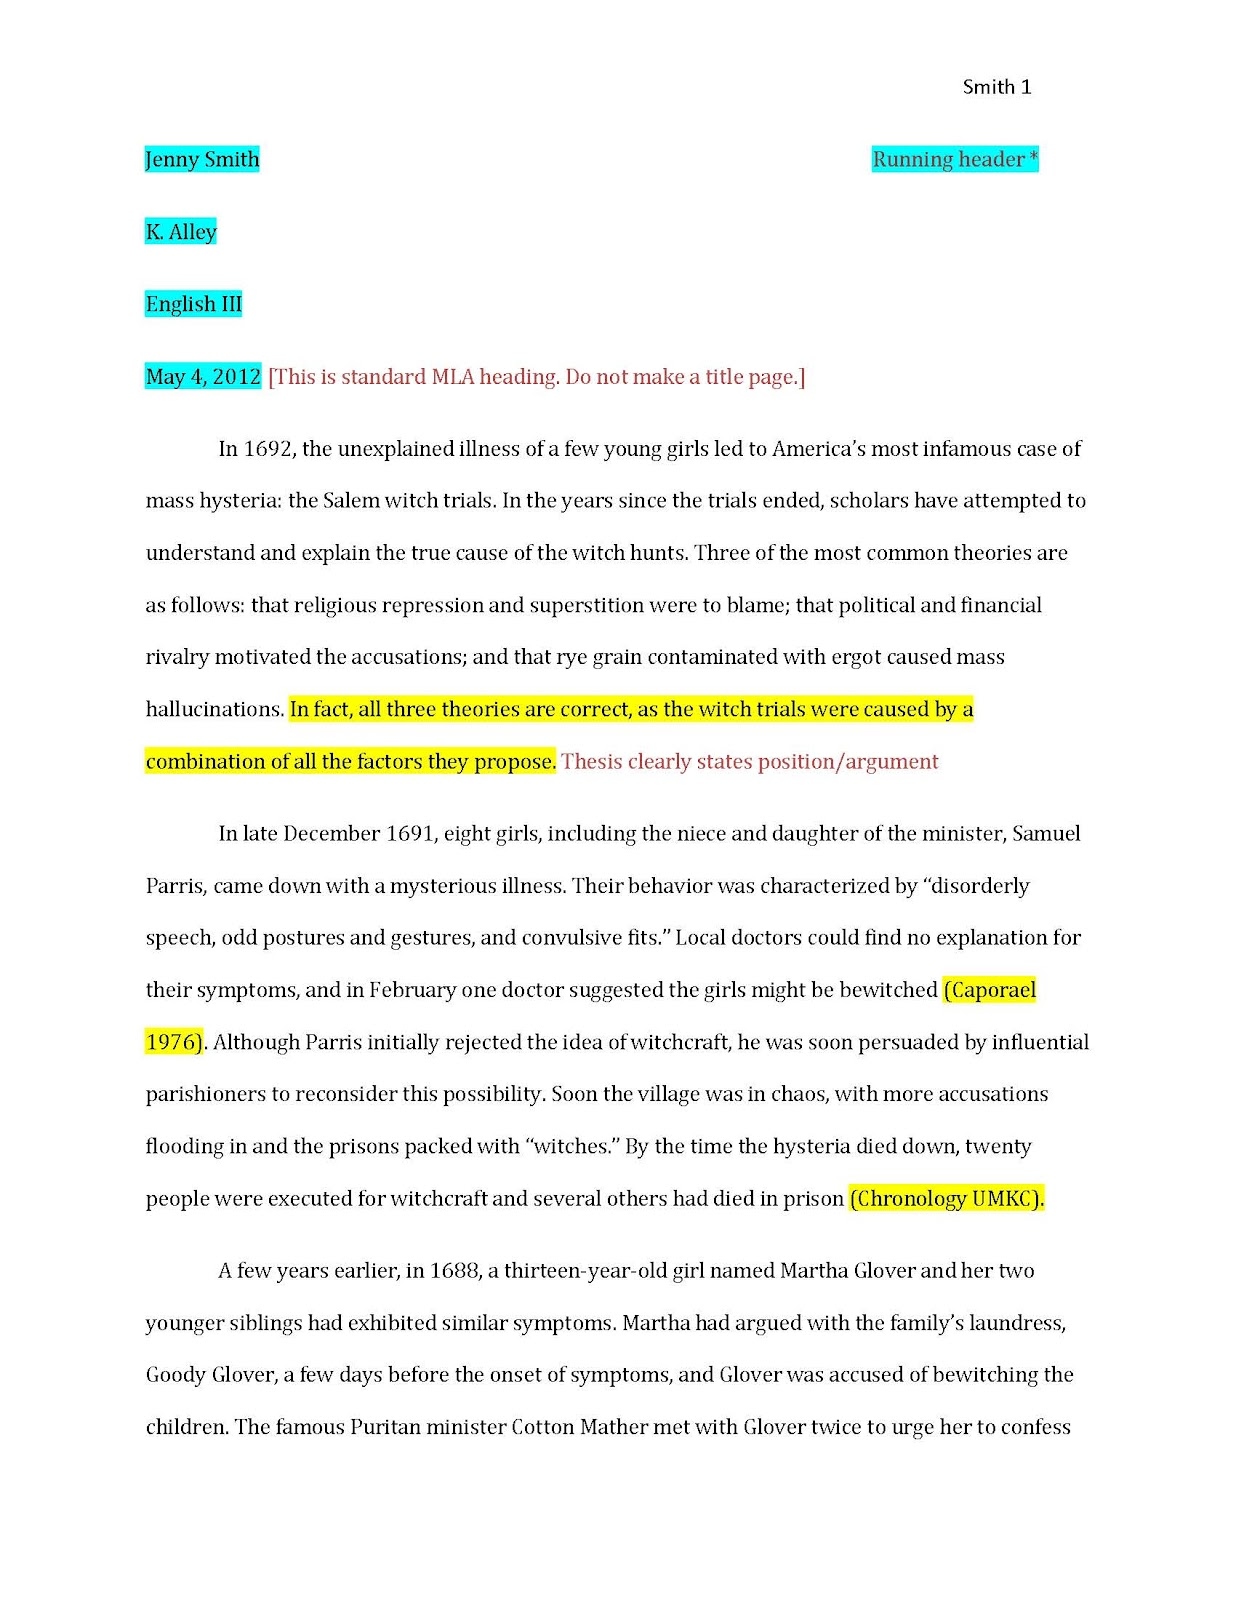 harvard referencing essay example referencing in essay guide to  referencing examples in essays examples of excellent cover letters referencing examples in essays sample hbs essays